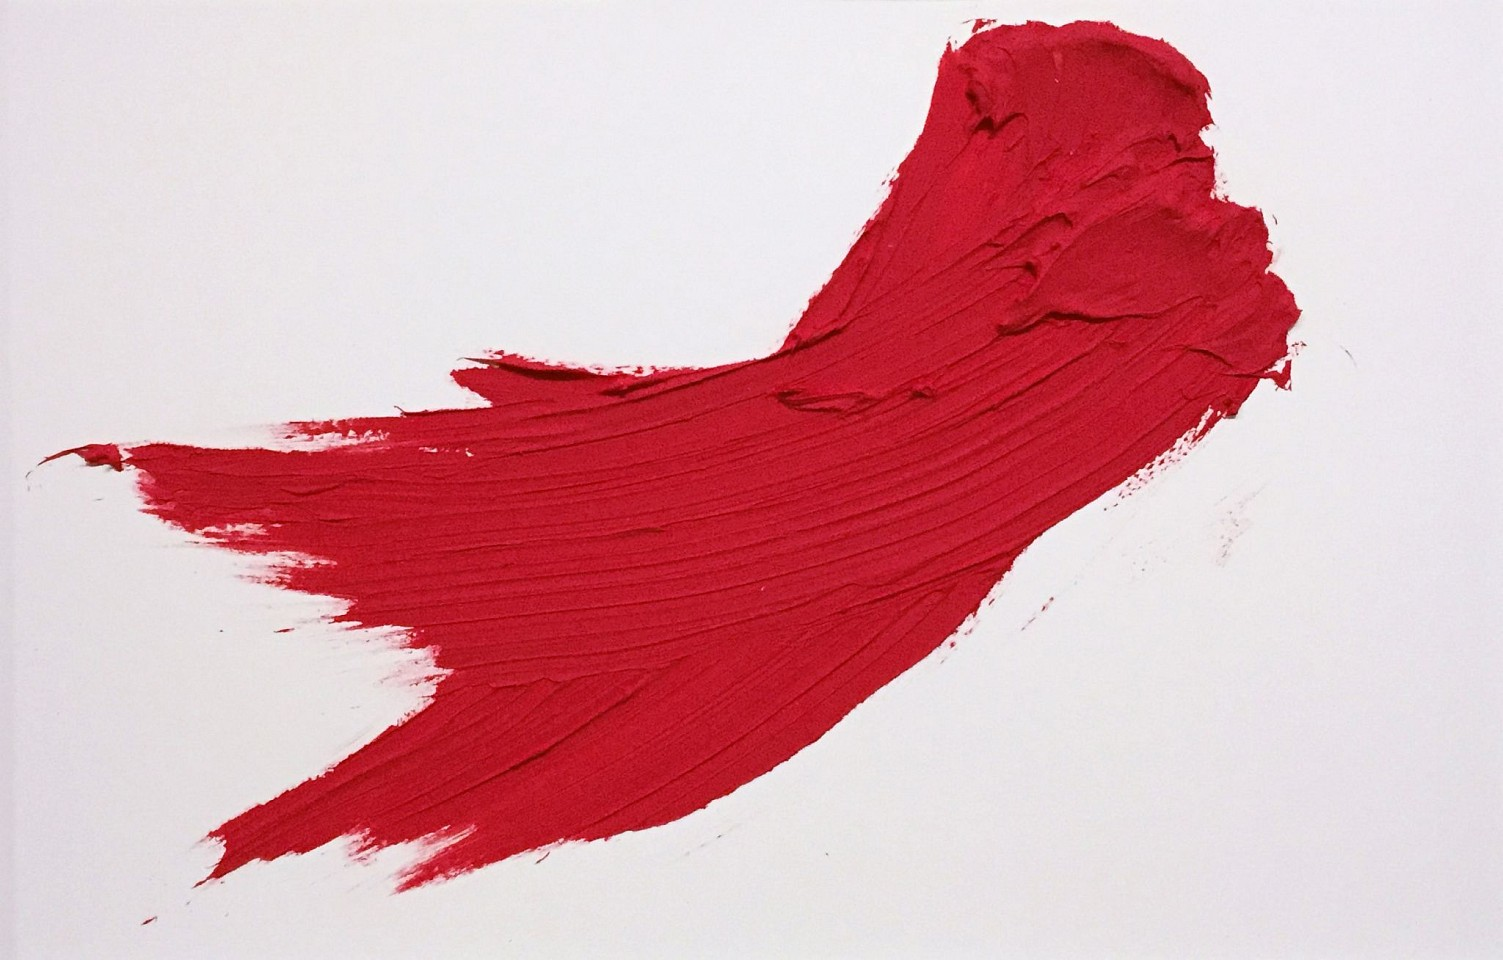 Donald Martiny ,   Untitled  ,  2017     polymer and pigment on paper ,  22.75 x 30.5 in. paper, 30 x 38 in. frame     Red framed     MART0045